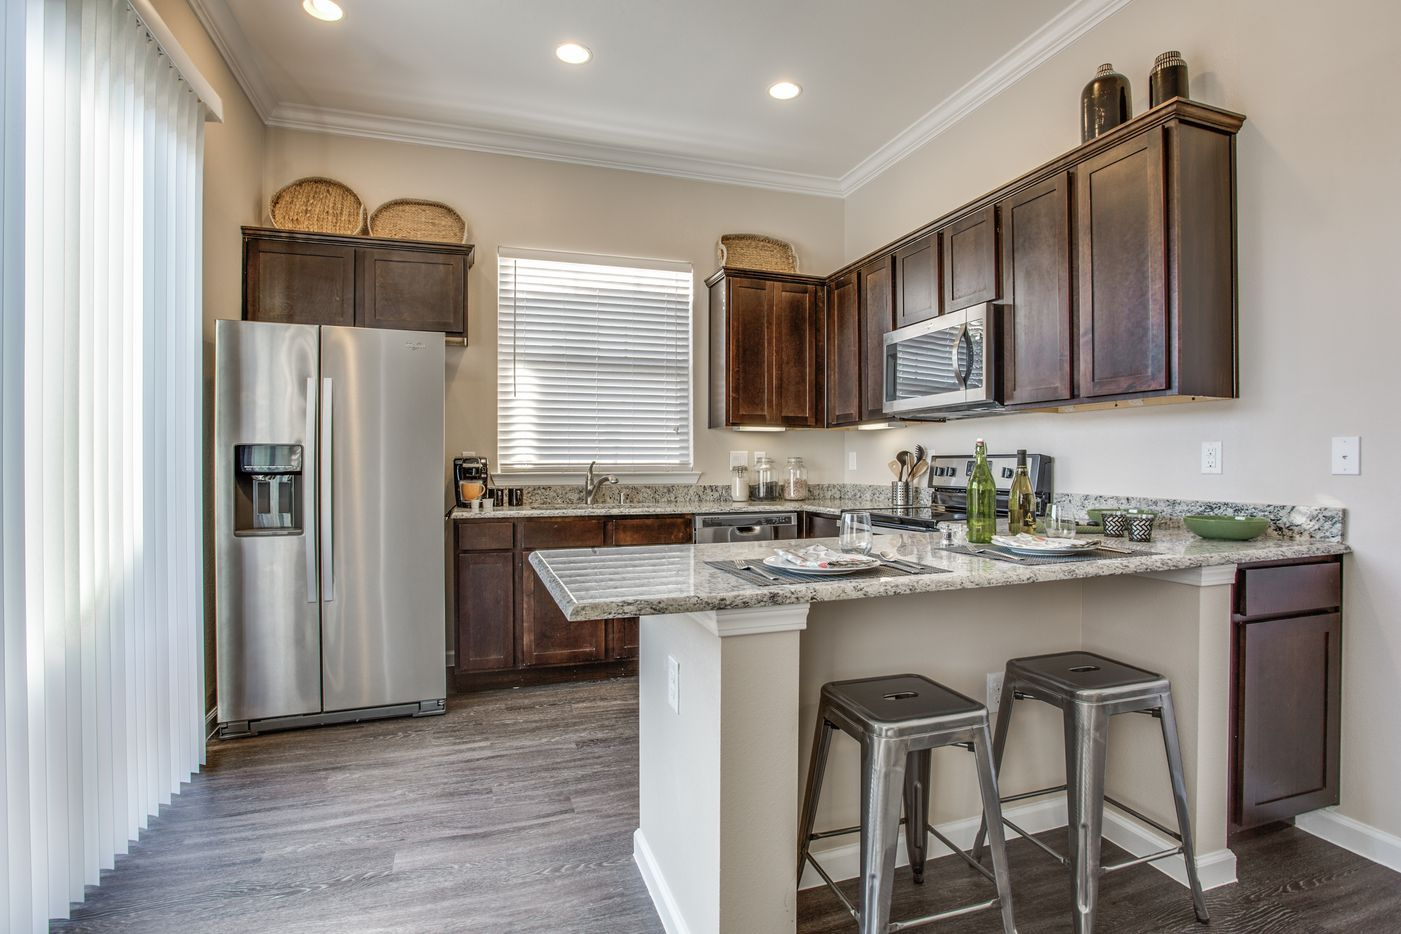 NexMetro Communities' first locations are in Plano and McKinney.